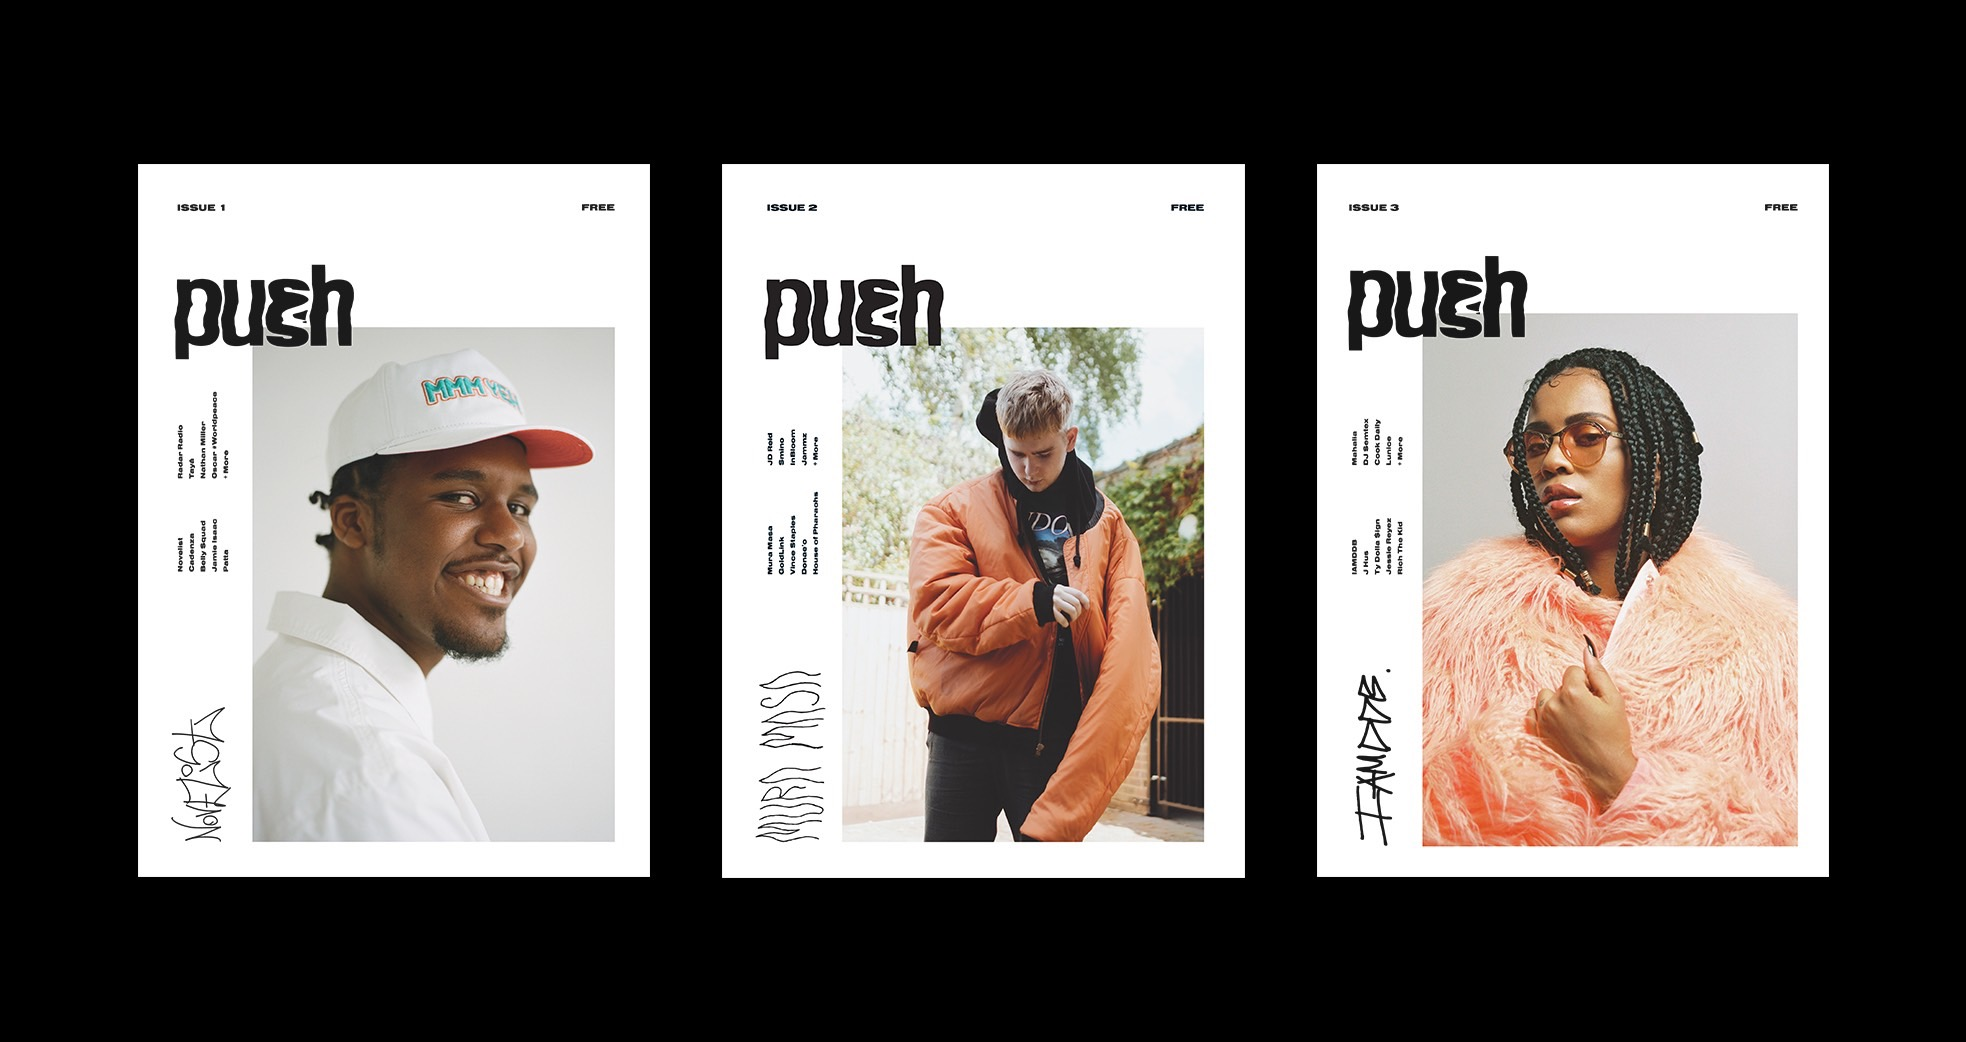 push-covers